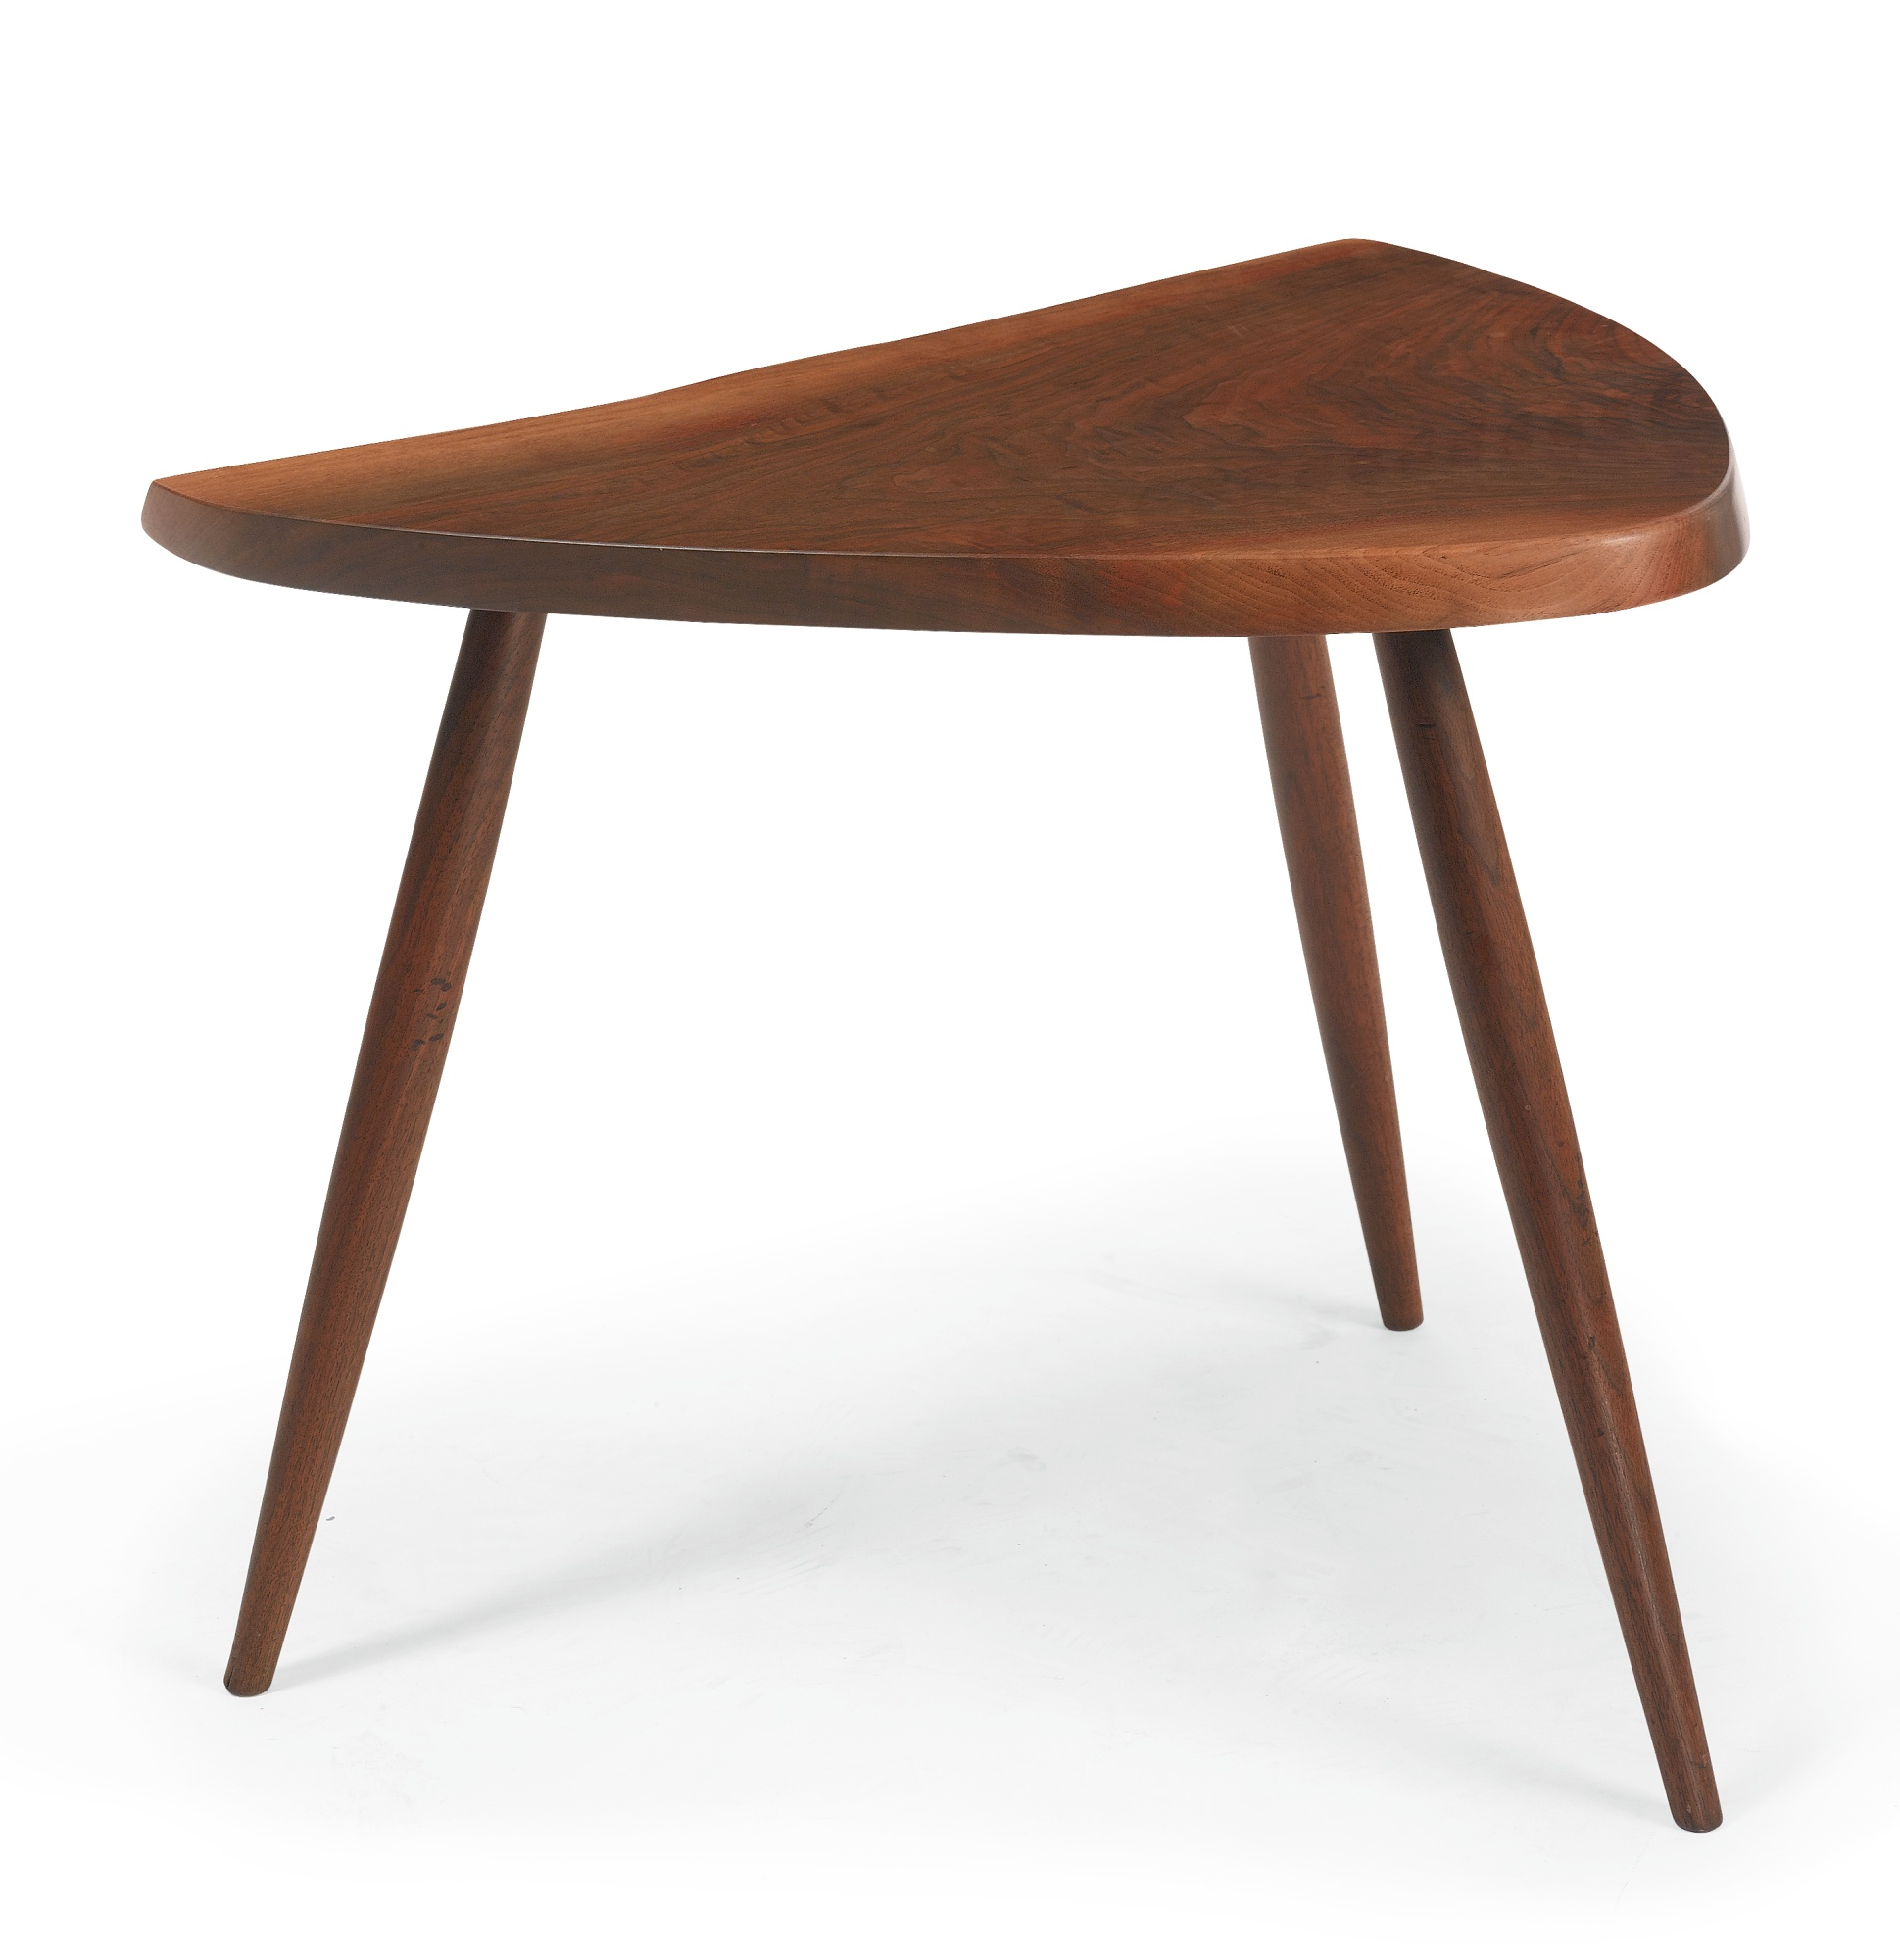 George Nakashima - Wepman Table-1980